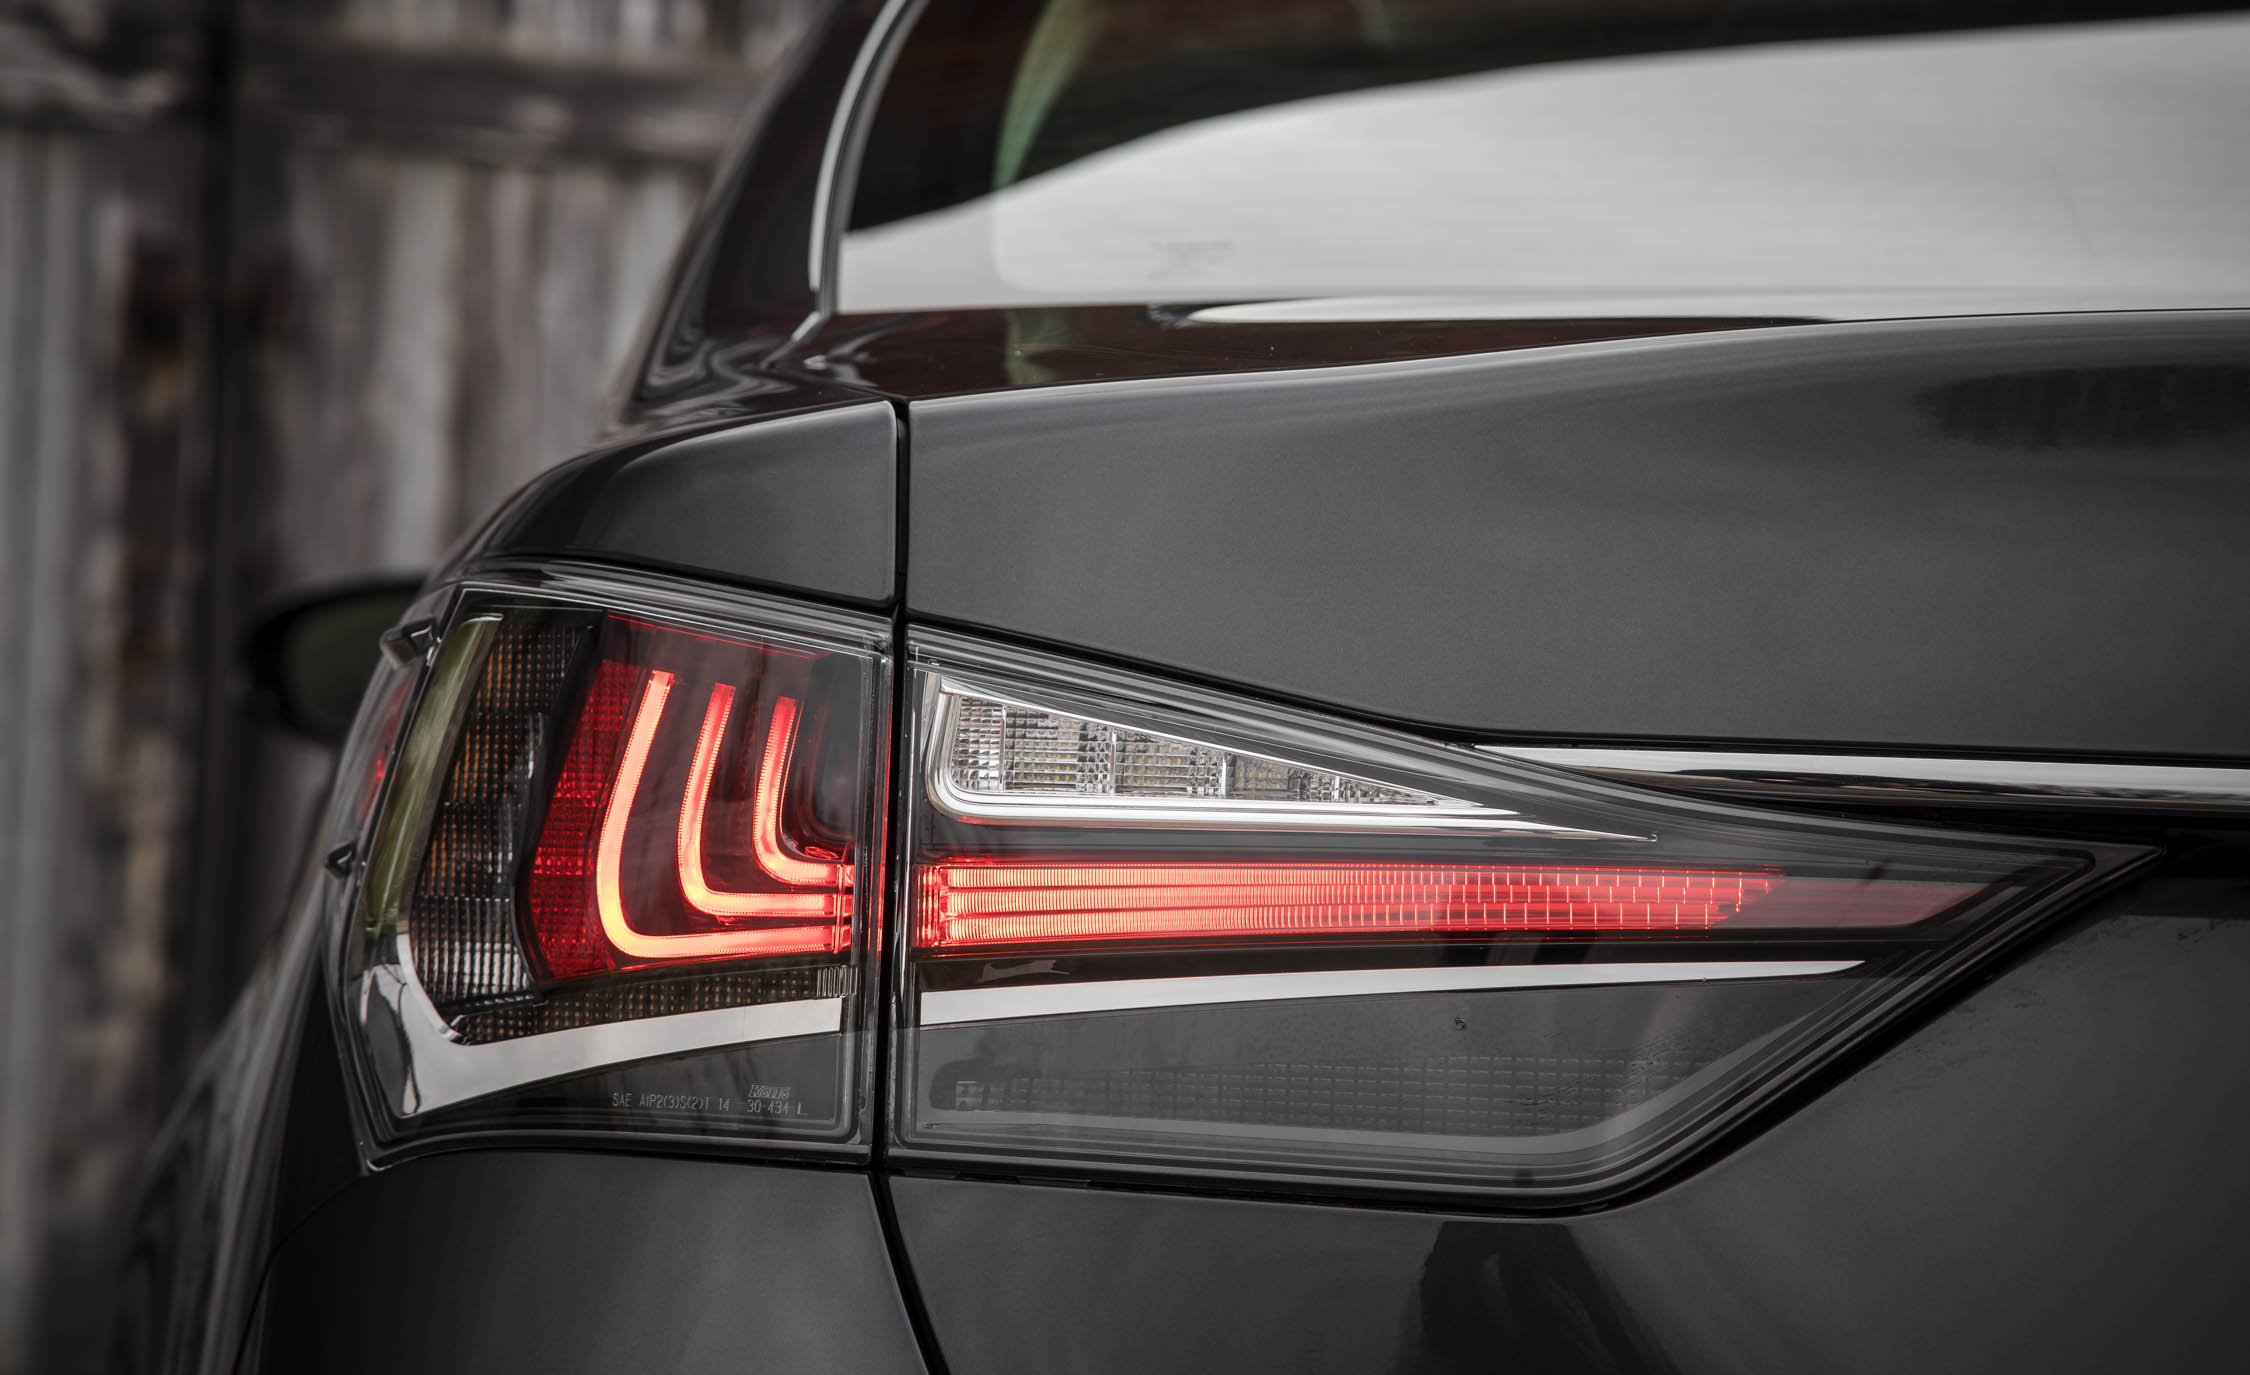 2017 Lexus GS200t Exterior View Taillight (Photo 12 of 26)